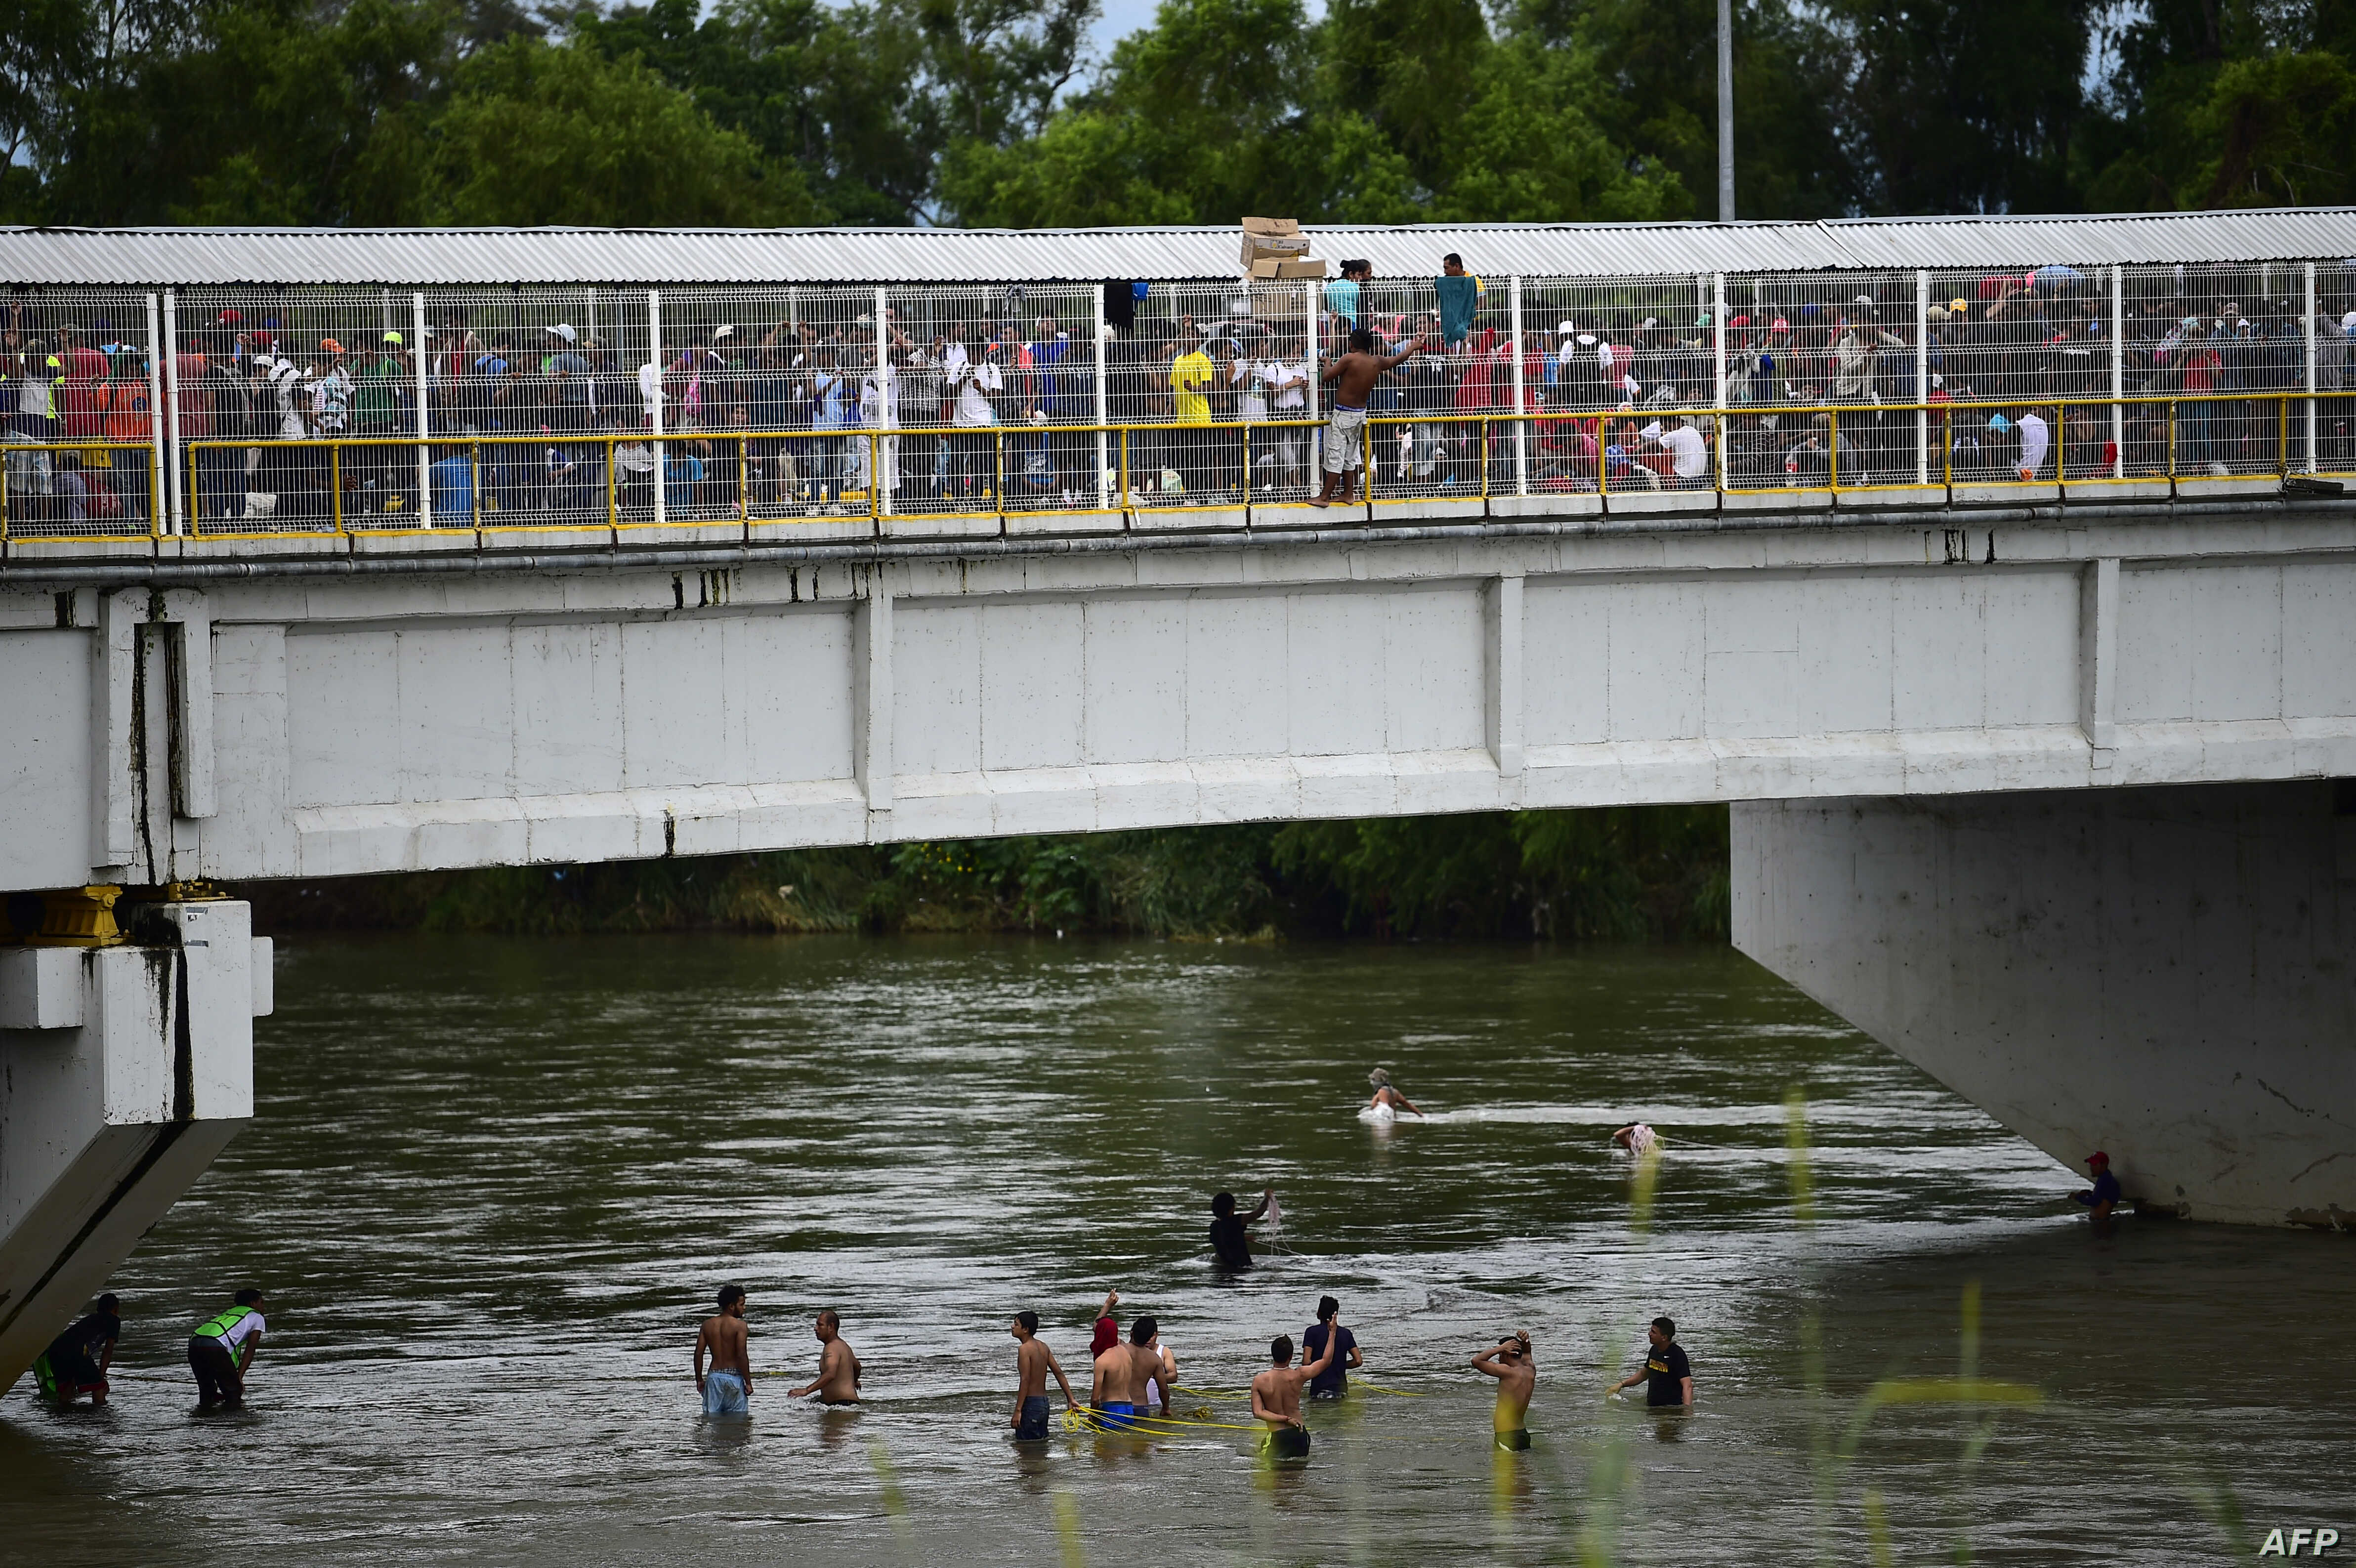 Honduran migrants heading in a caravan to the US, wait to help fellow men get down to the Suchiate River from the Guatemala-Mexico international border bridge, in Ciudad Hidalgo, Chiapas state, Mexico, Oct. 20, 2018.